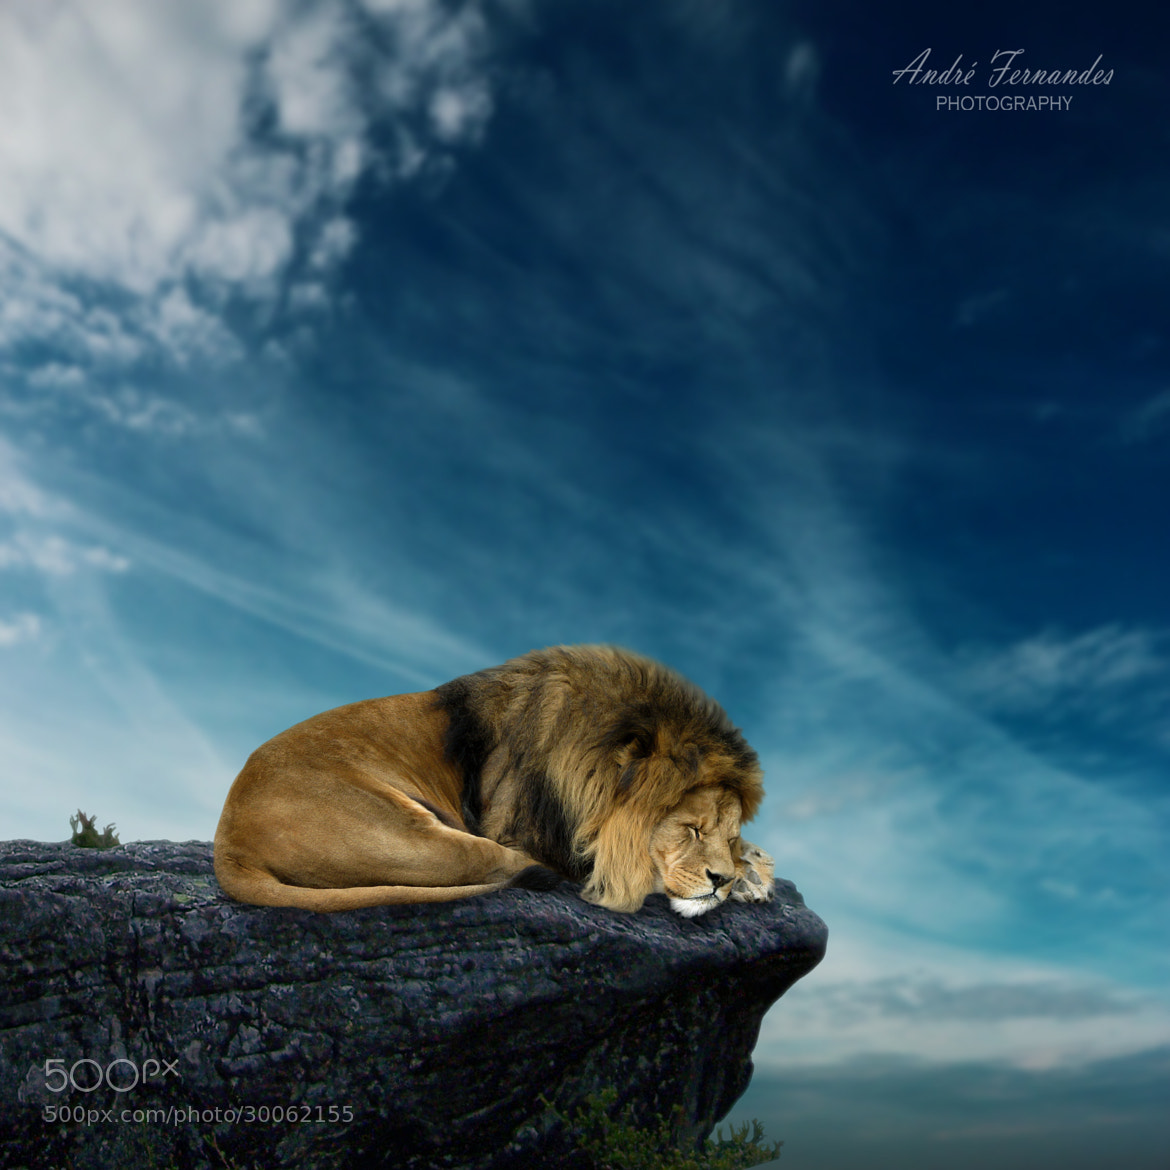 Photograph The Lion King by André Fernandes on 500px